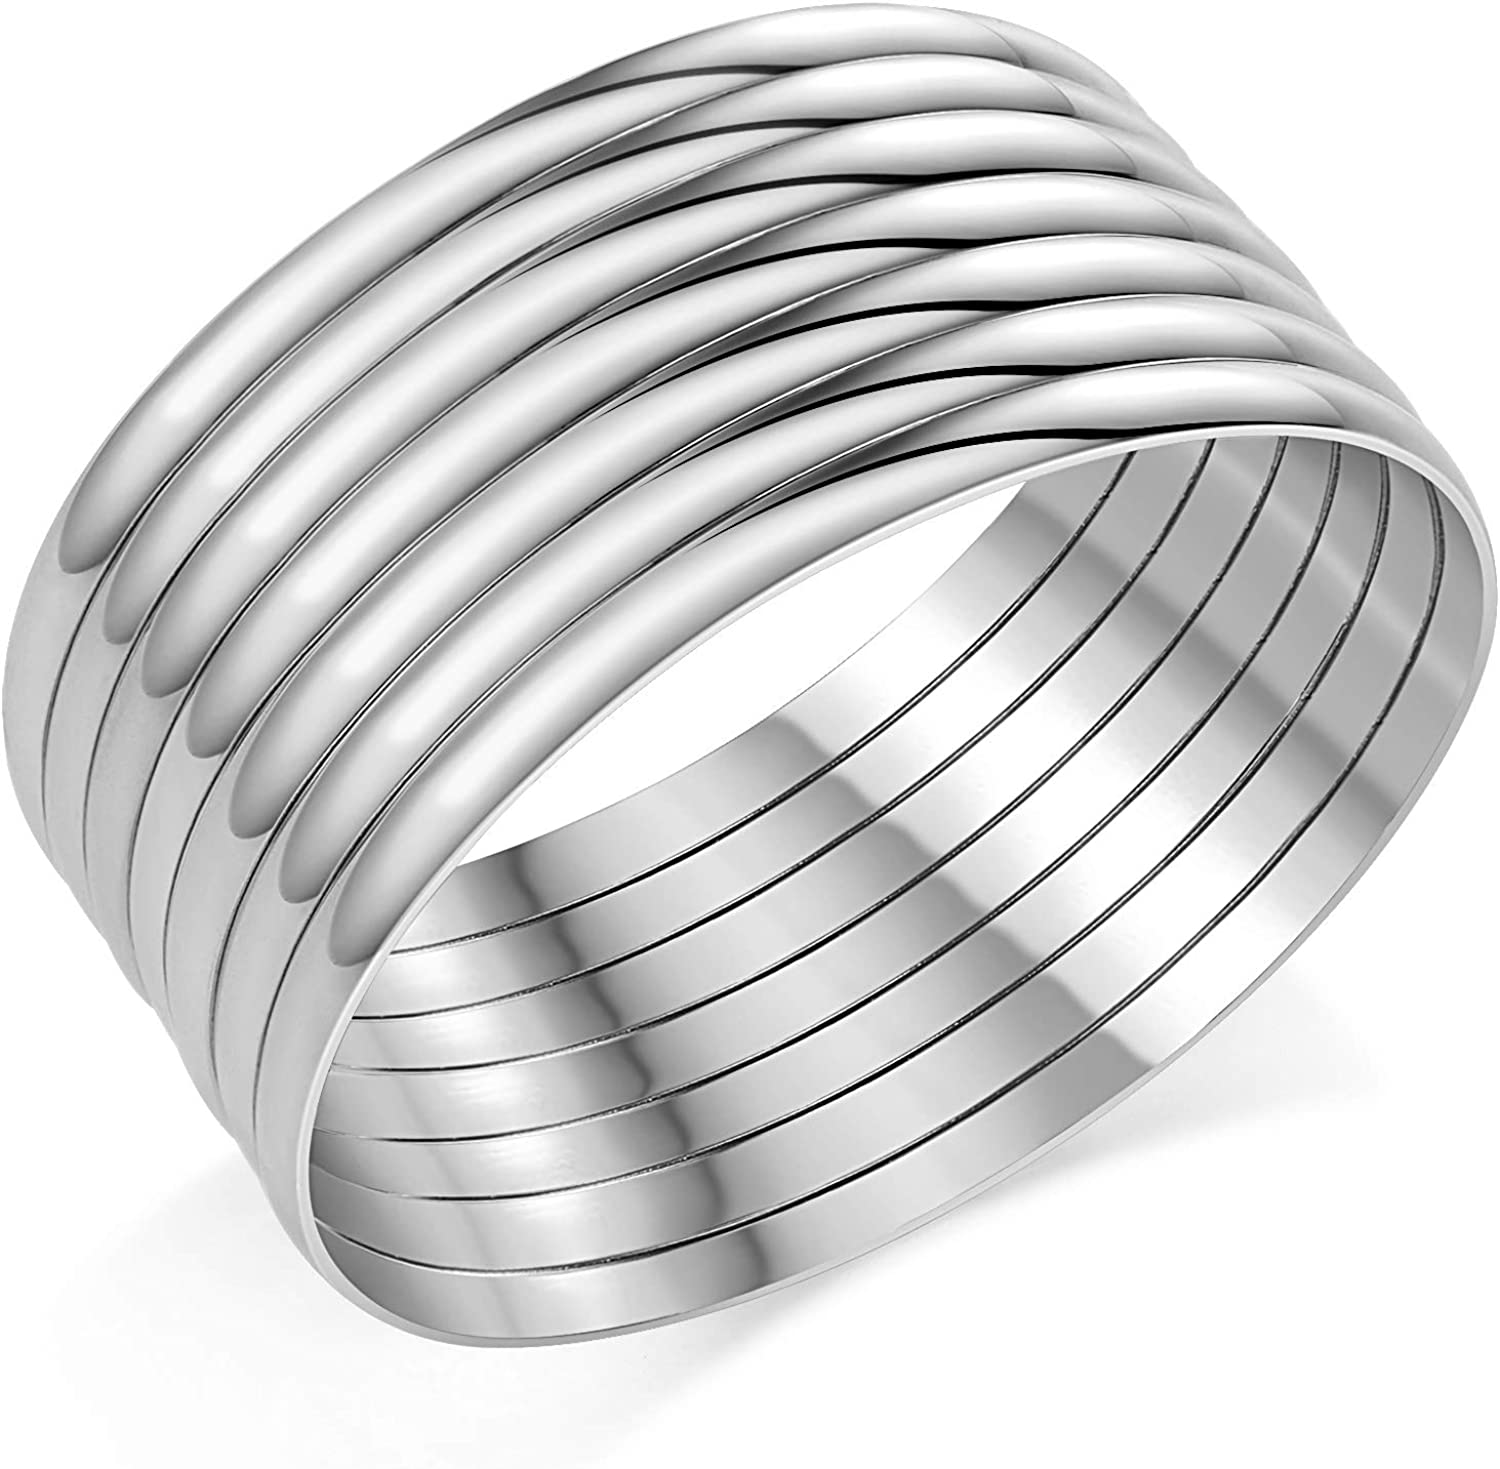 Castillna Stainless Steel Glossy XXL Plus Size Bangle Bracelets Set for Women, Set of 7 Pieces, 9.6 Inches